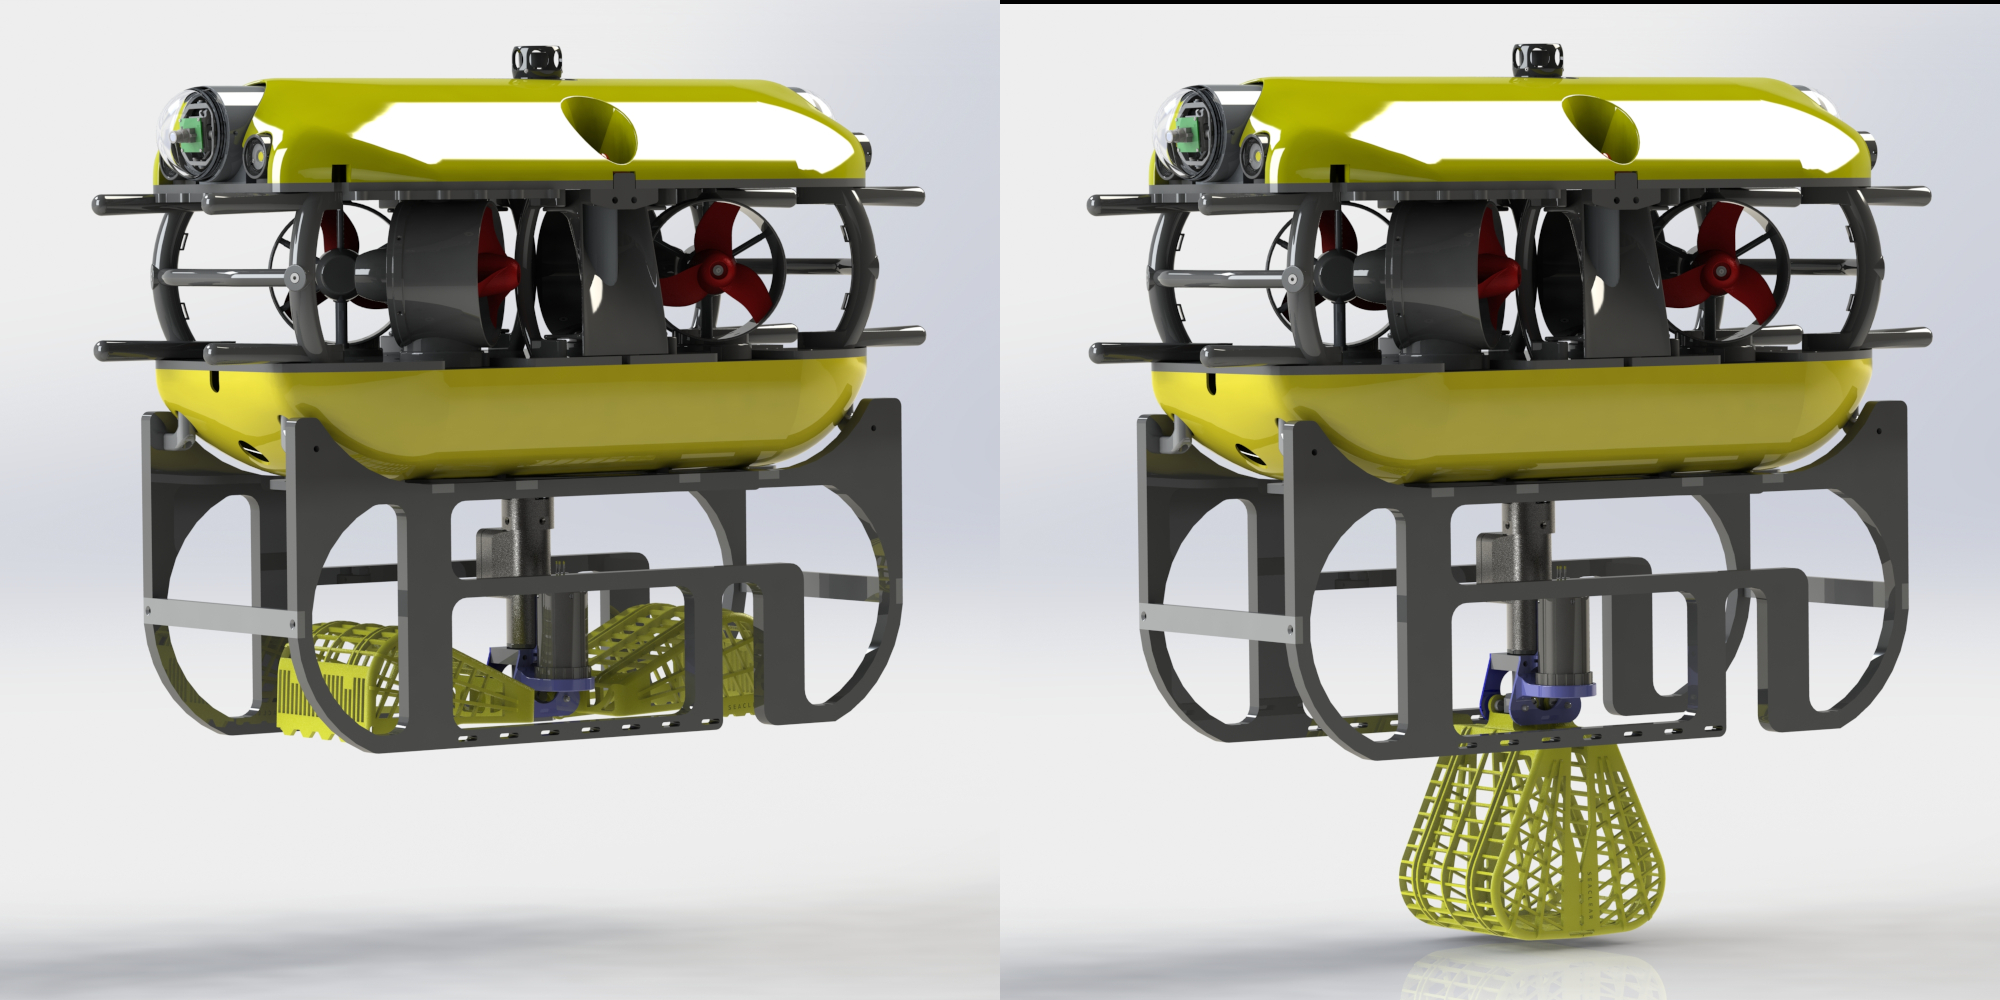 Render of the tortuga ROV with the gripper